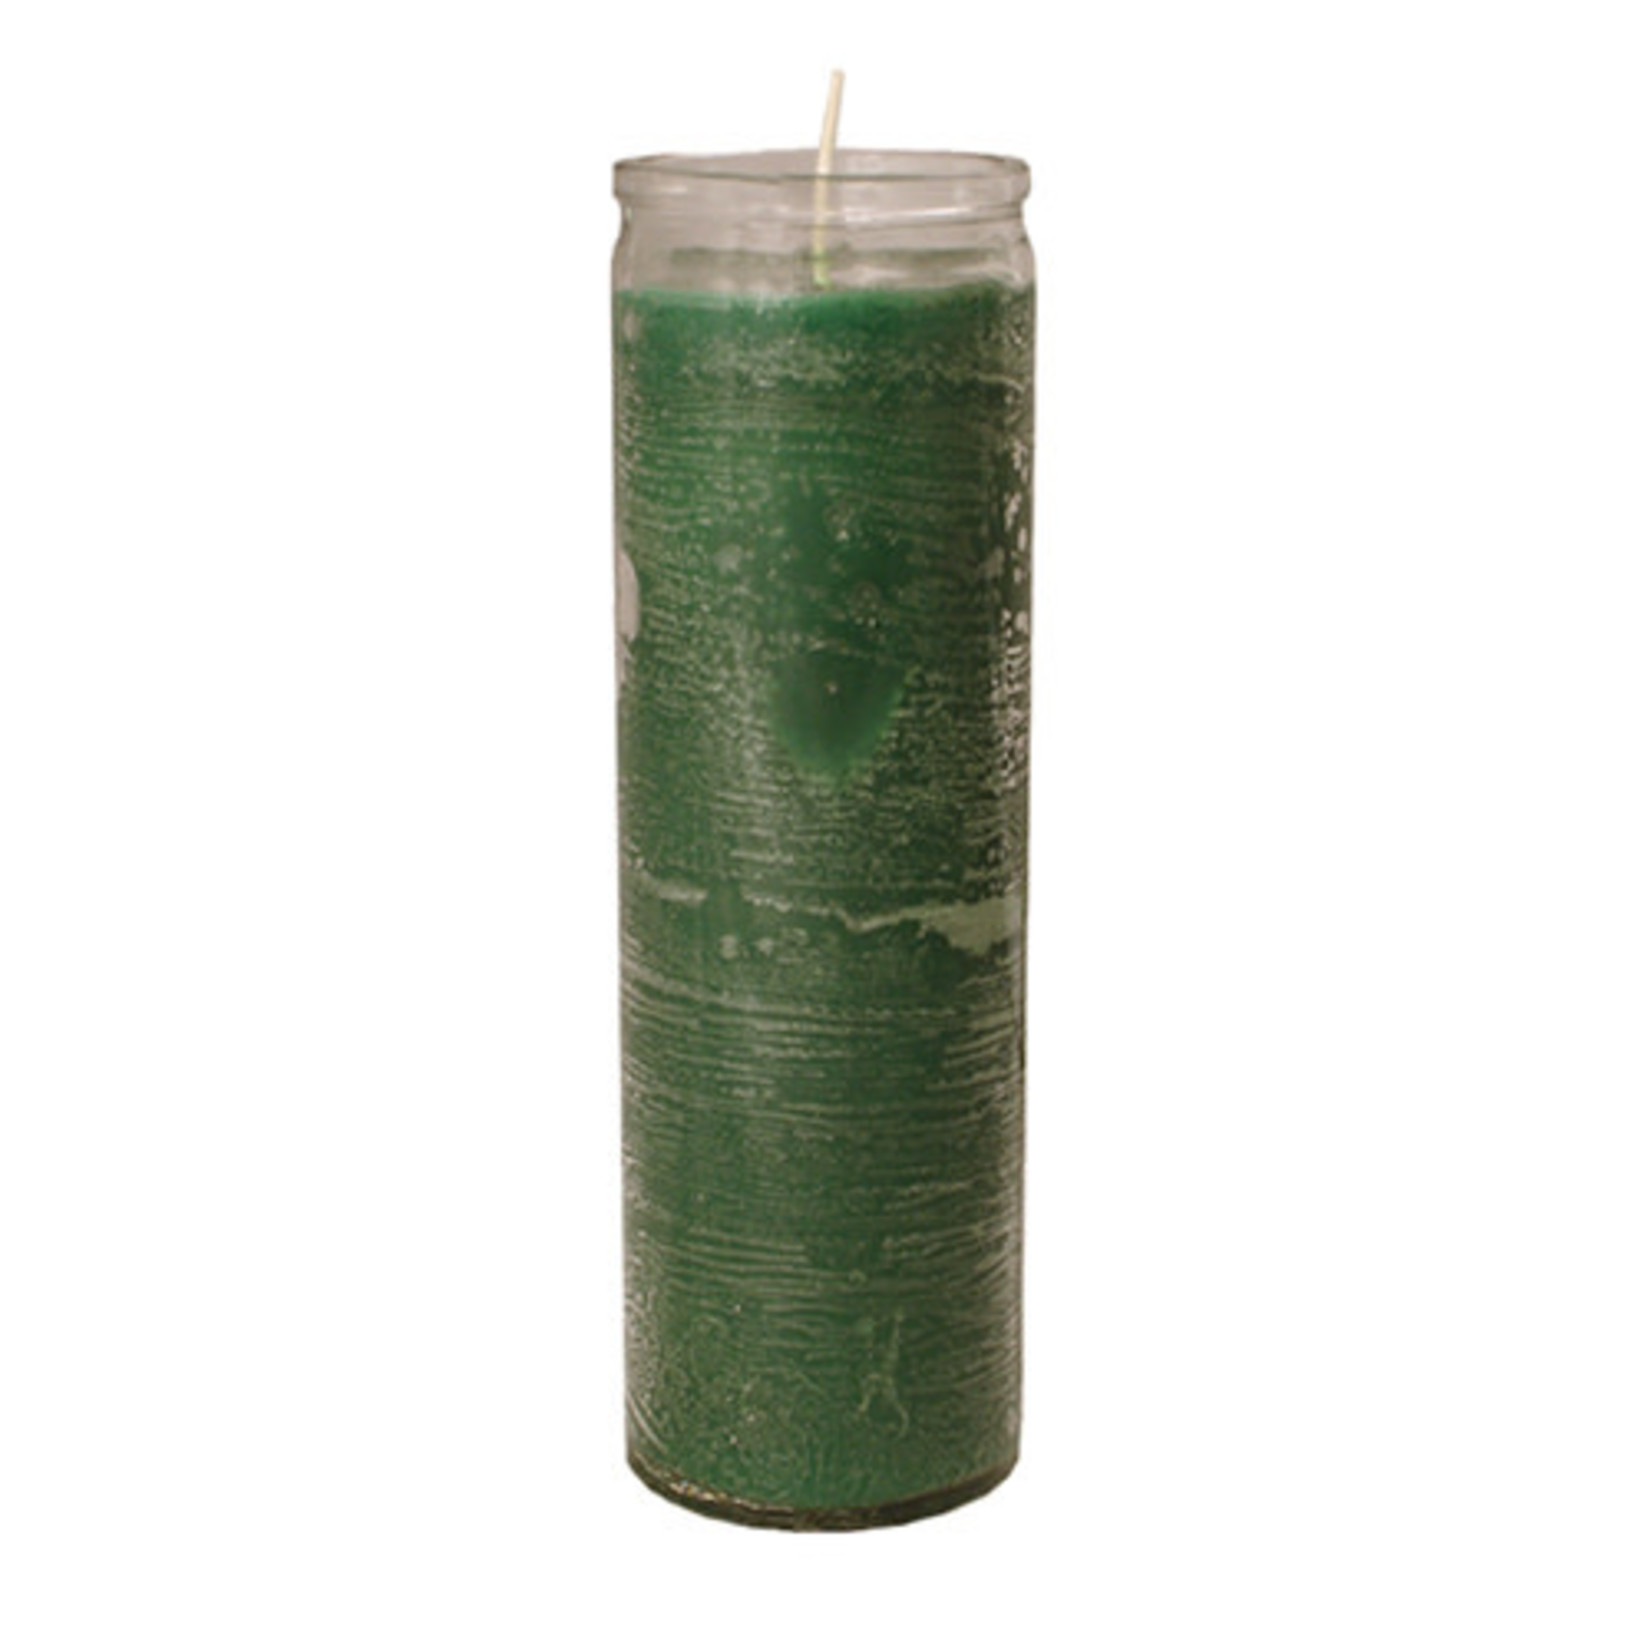 36 Hour Candle Plain Green